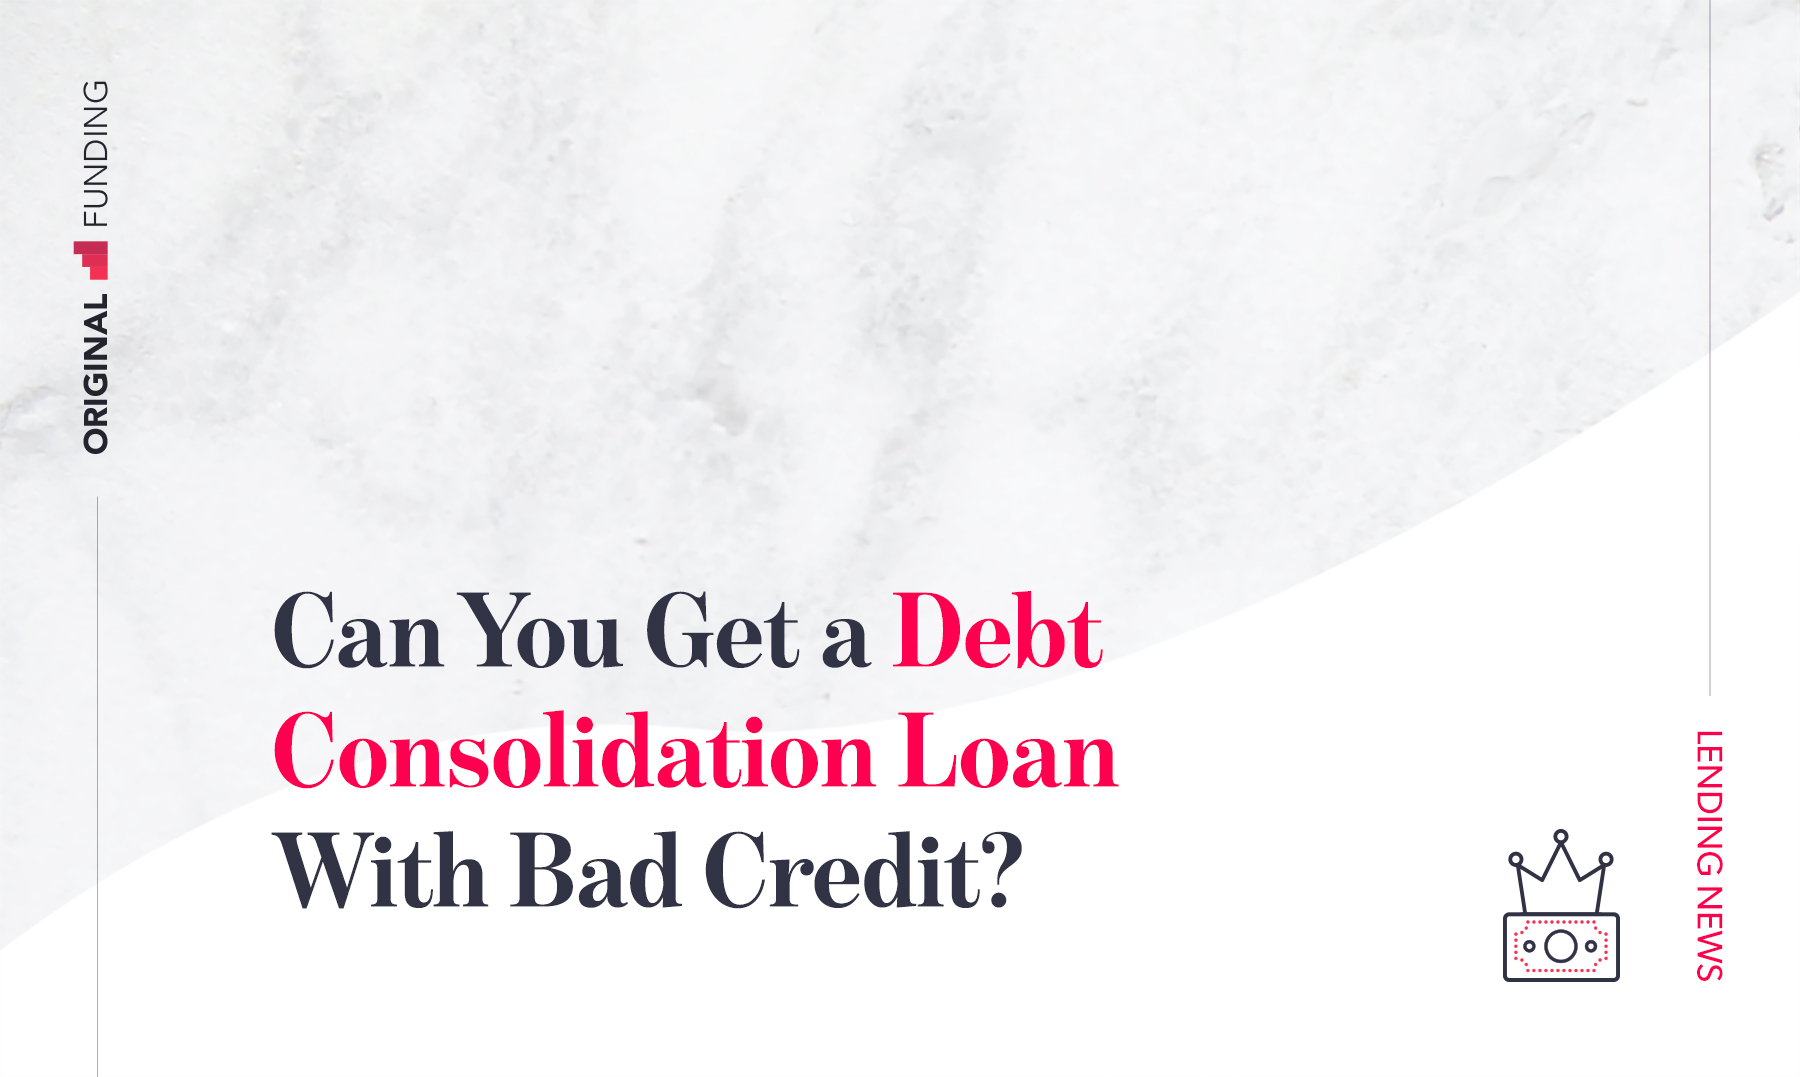 Can-You-Get-a-Debt-Consolidation-Loan-With-Bad-Credit-